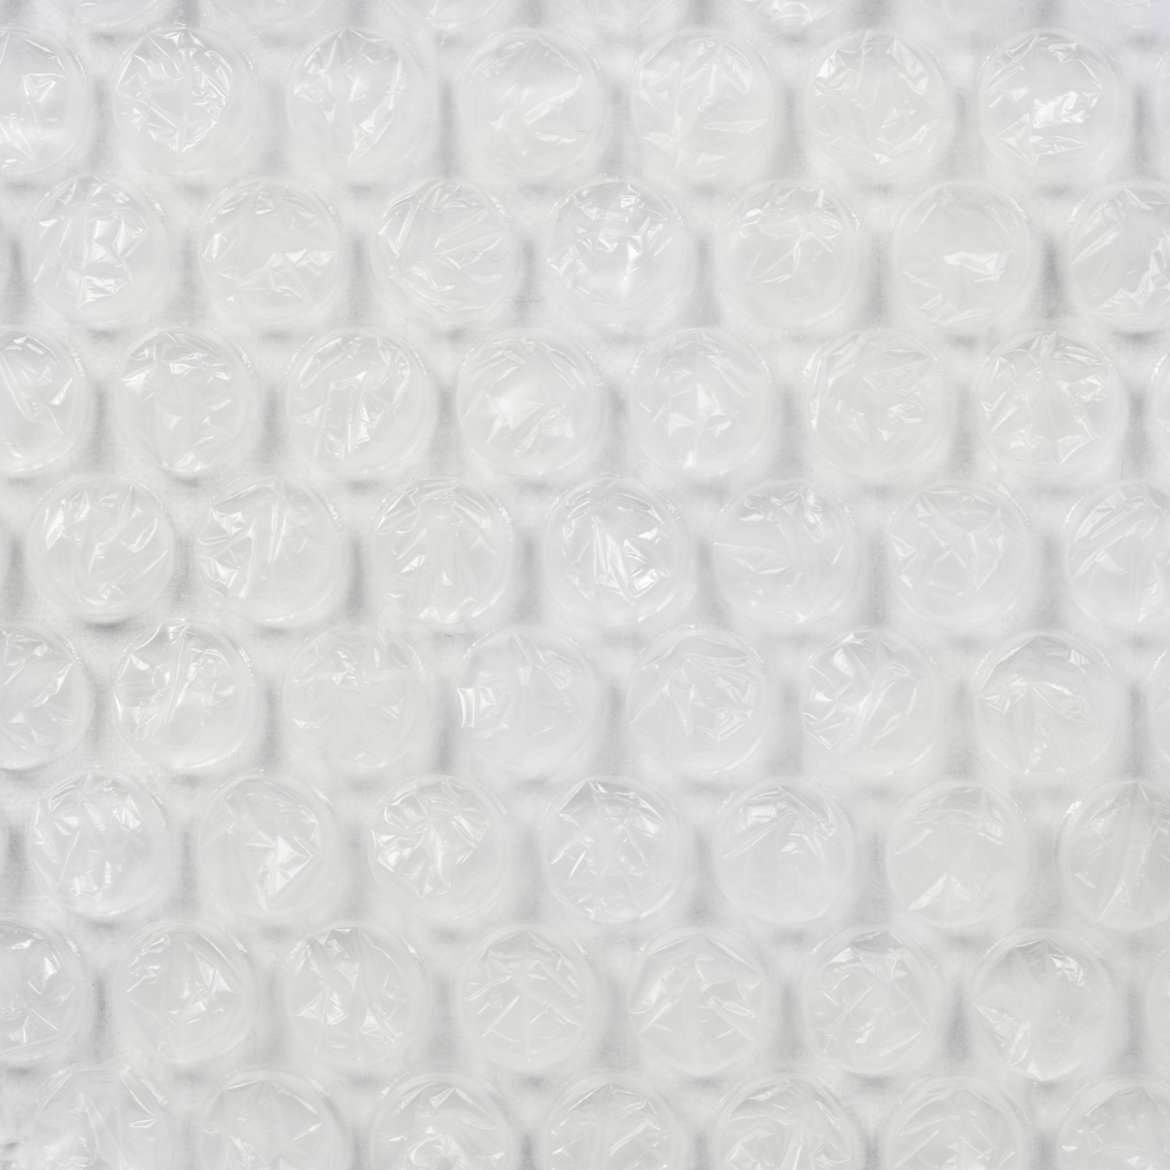 Self Cling Bubble Wrap No Tape Needed 12in X 15ft